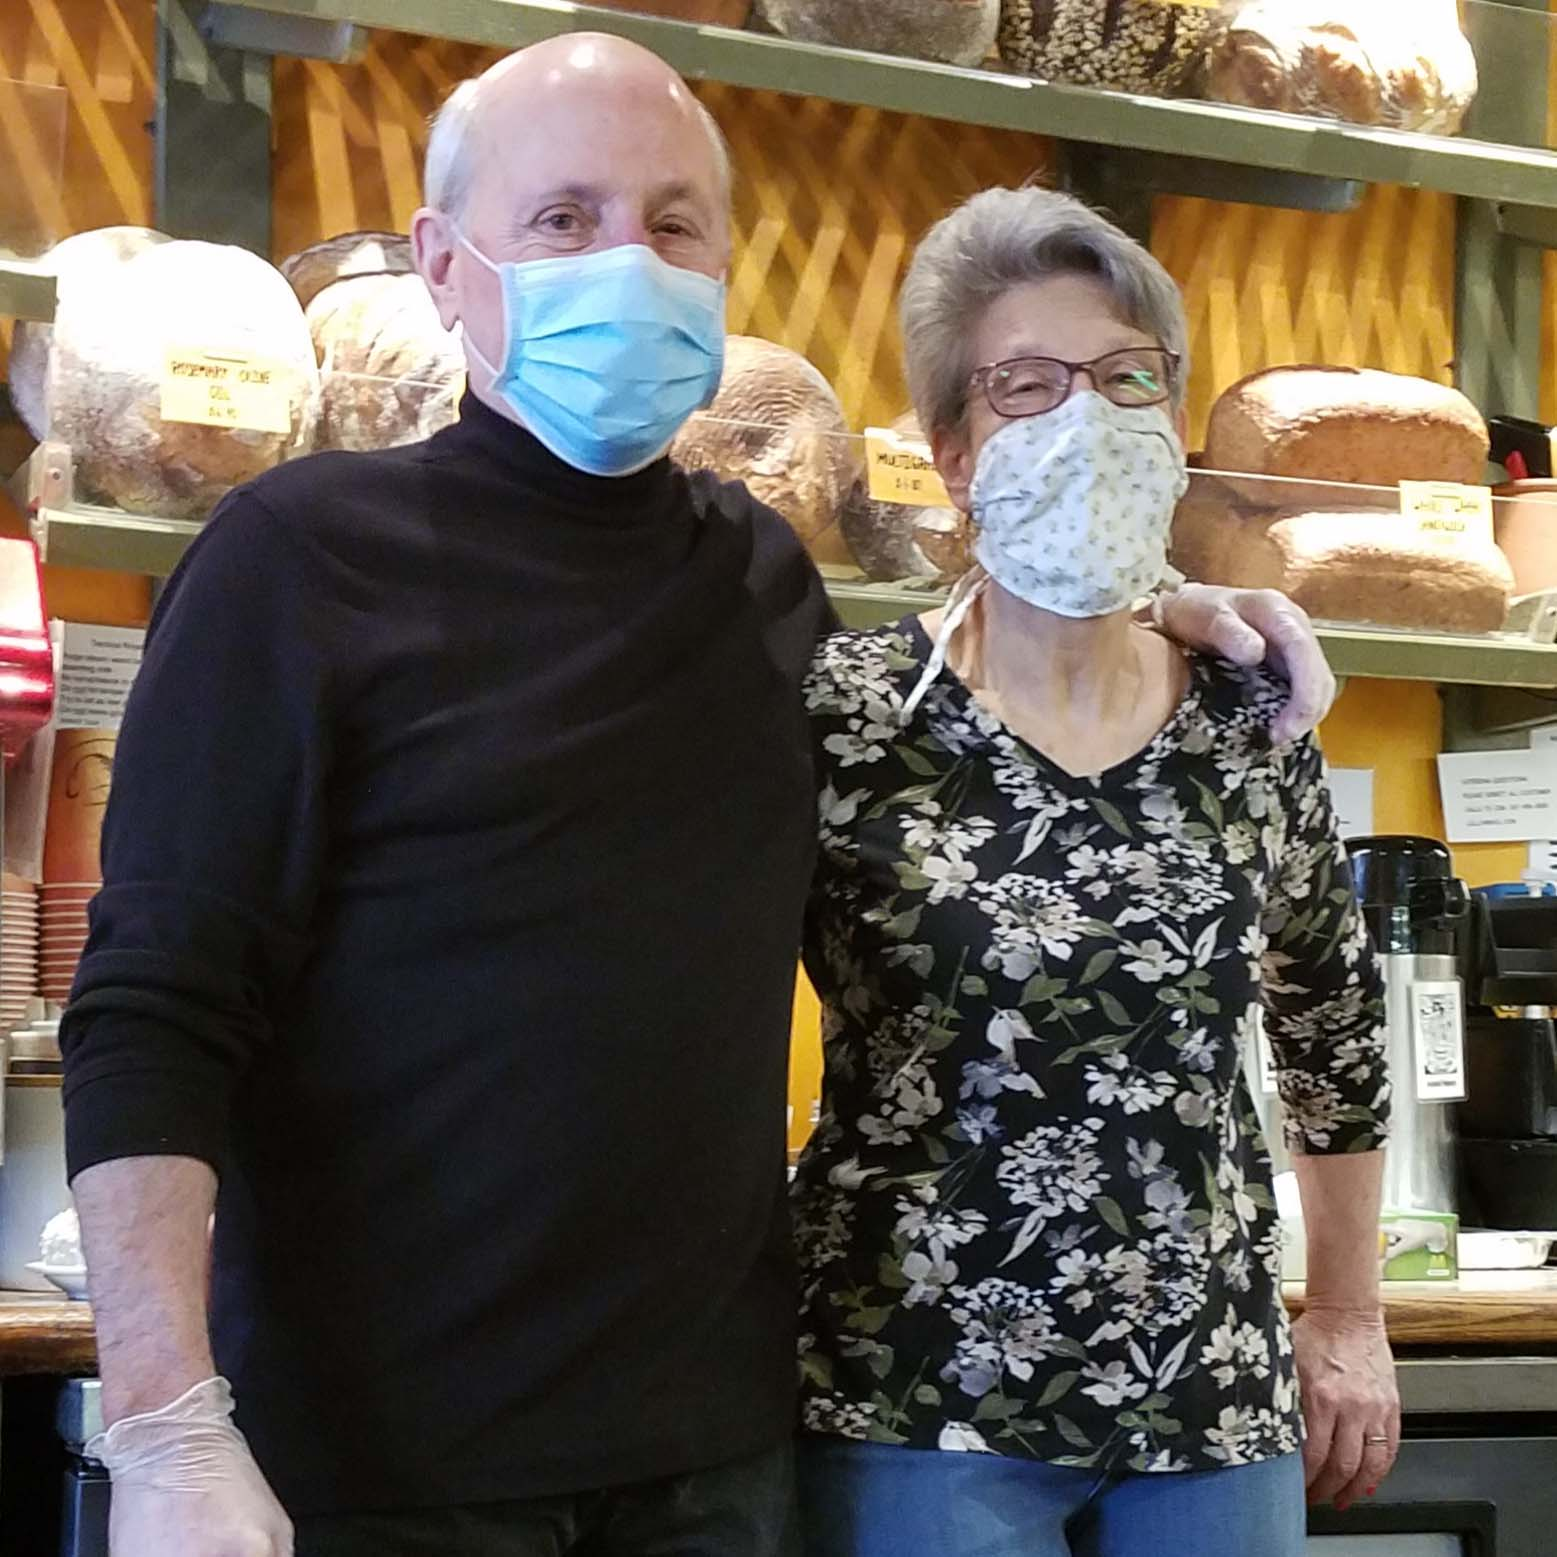 man and woman wearing masks in bakery